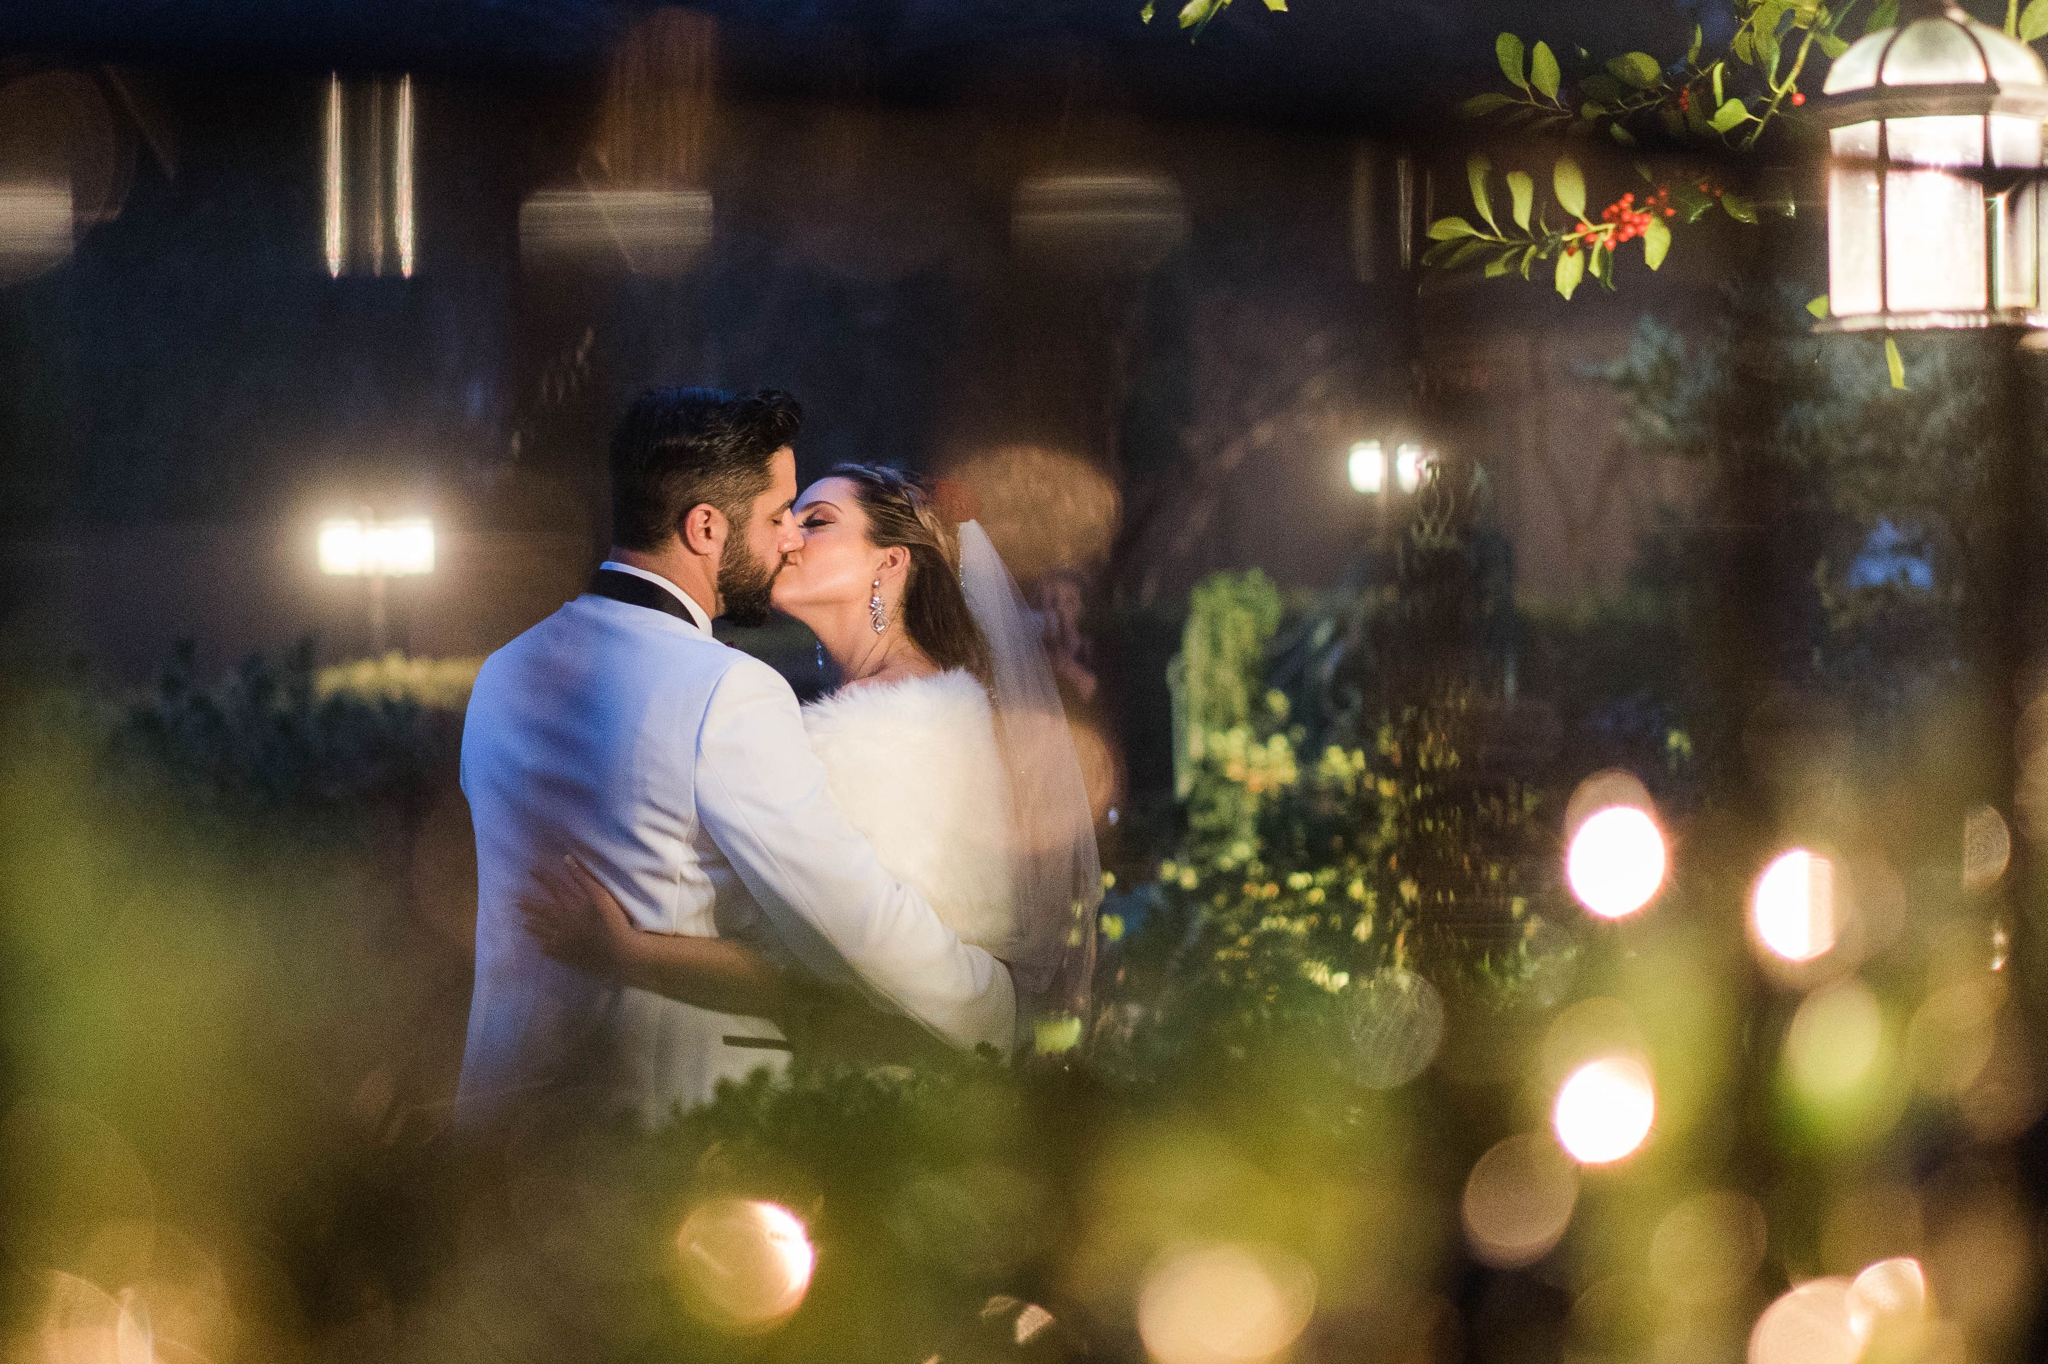 Portraits of the Bride and Groom at night - Honolulu Oahu Hawaii Wedding Photographer